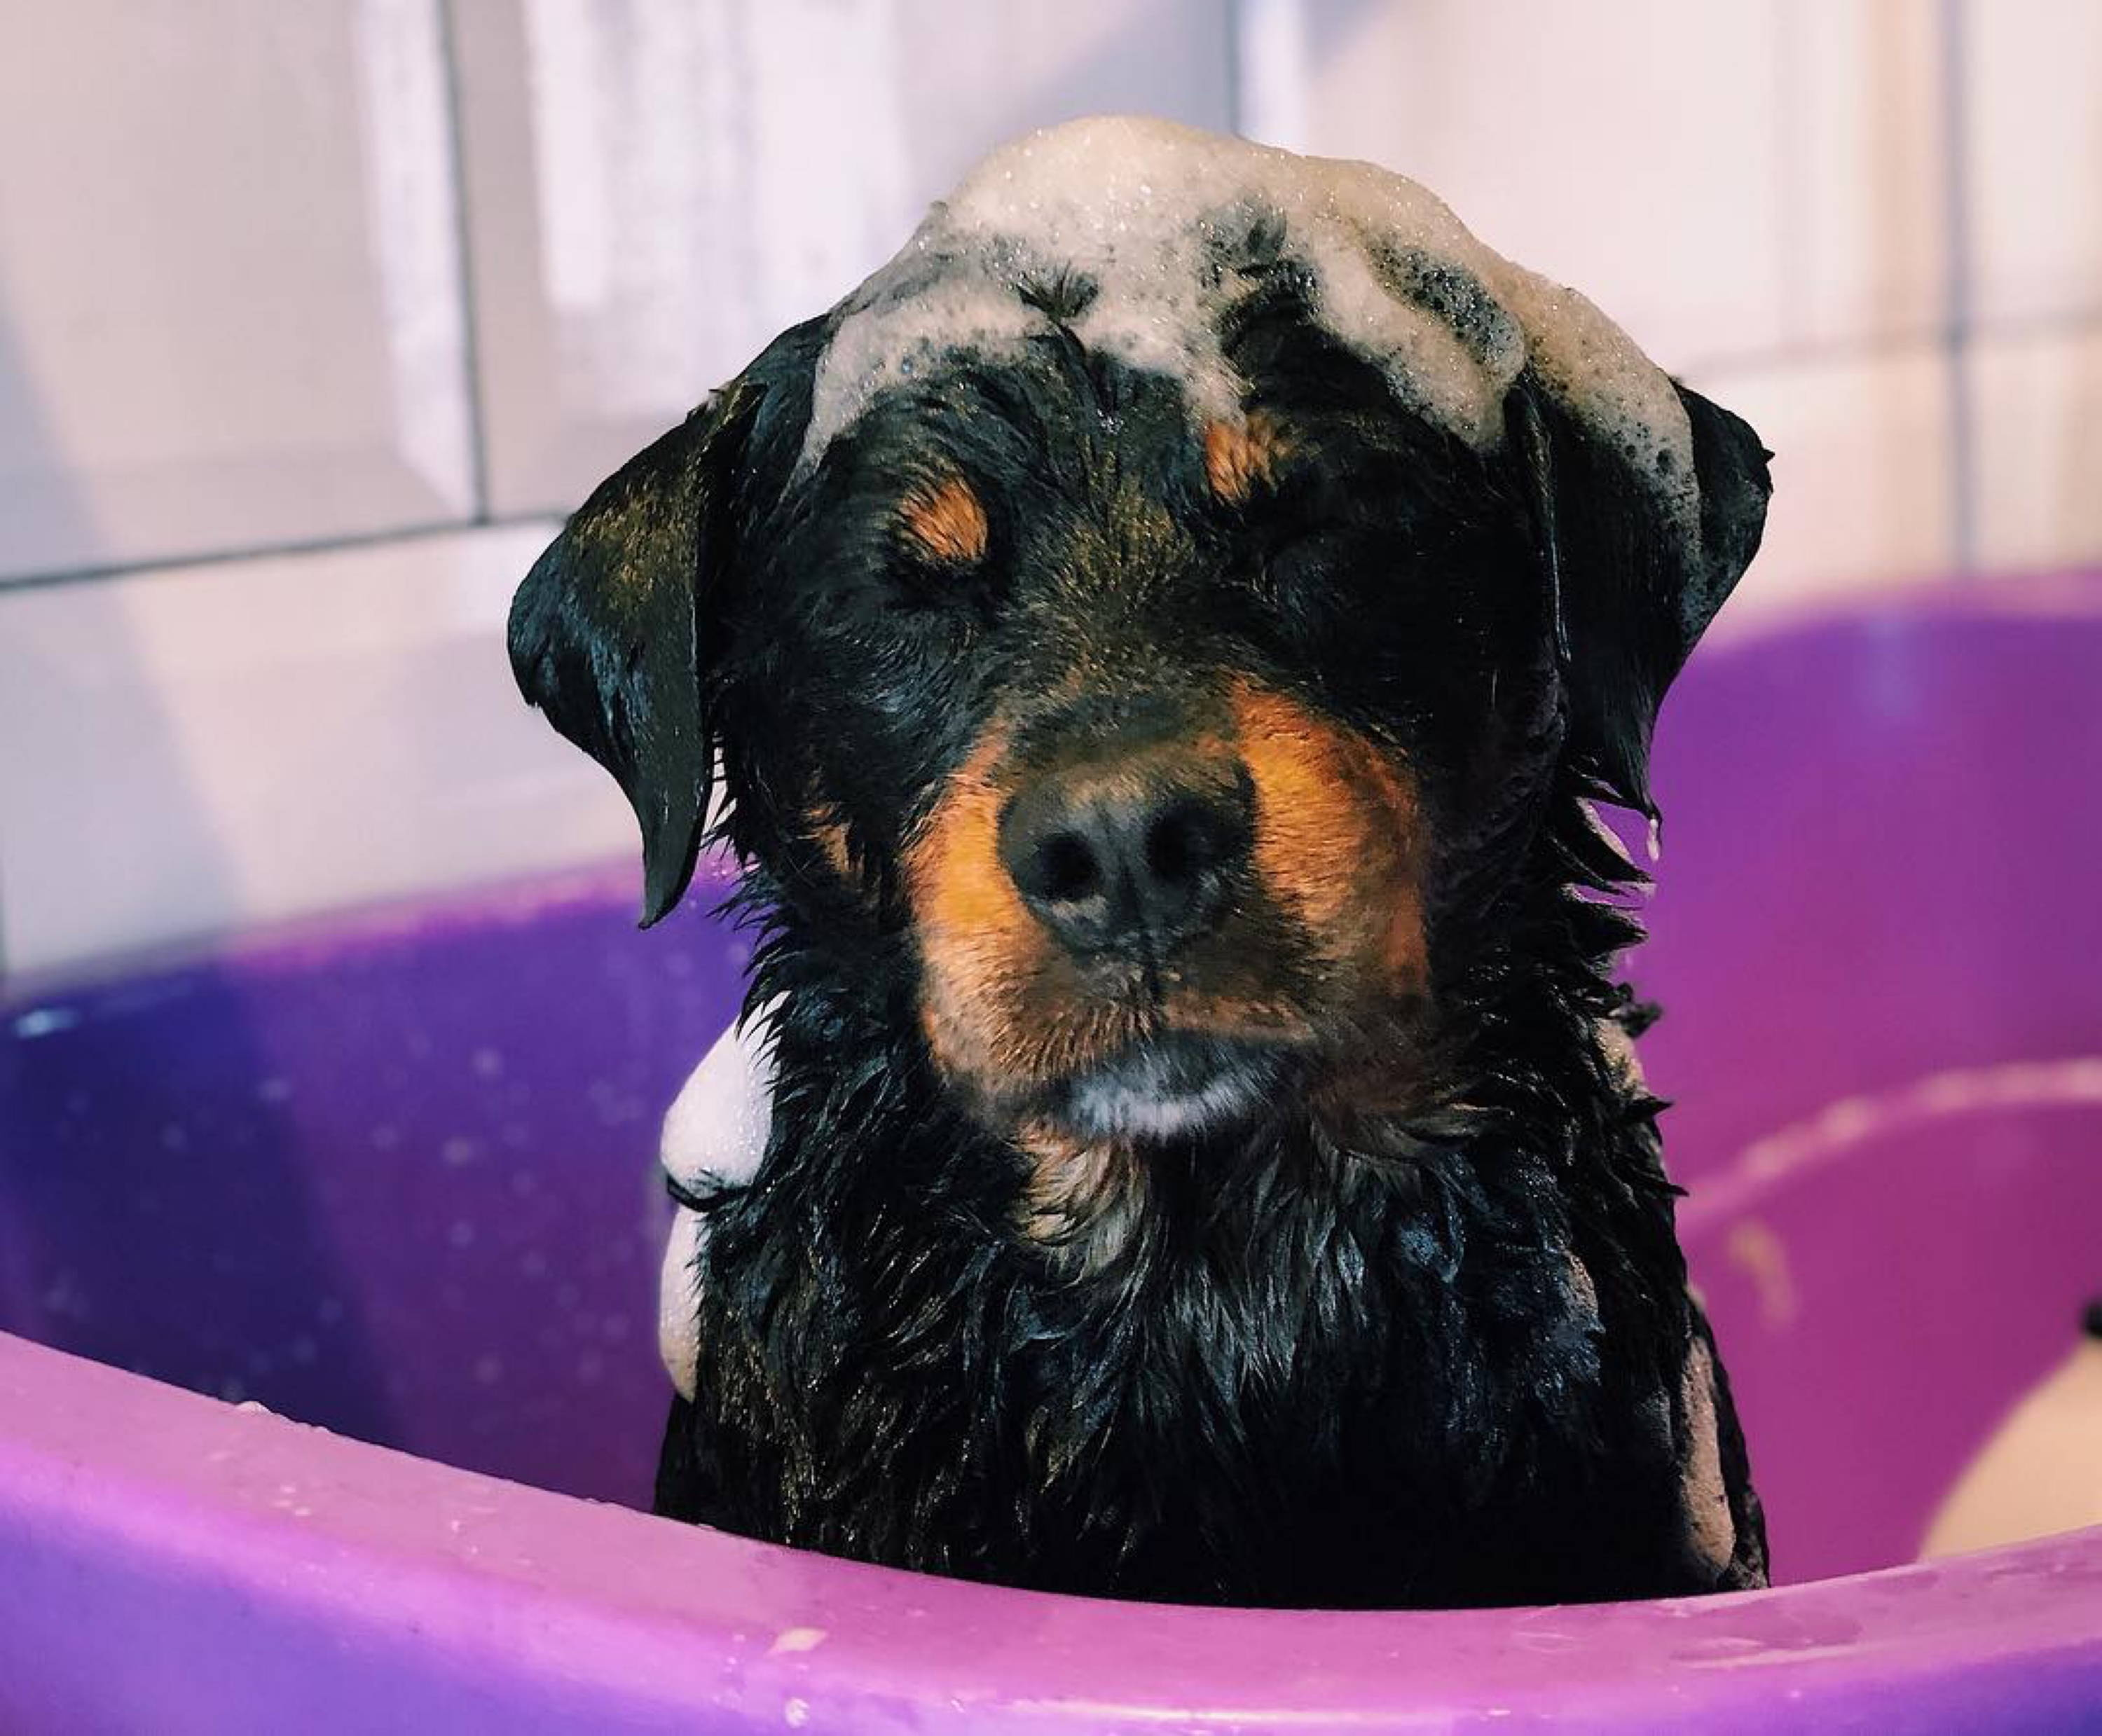 rottweiler puppy taking a bath in kiddie pool